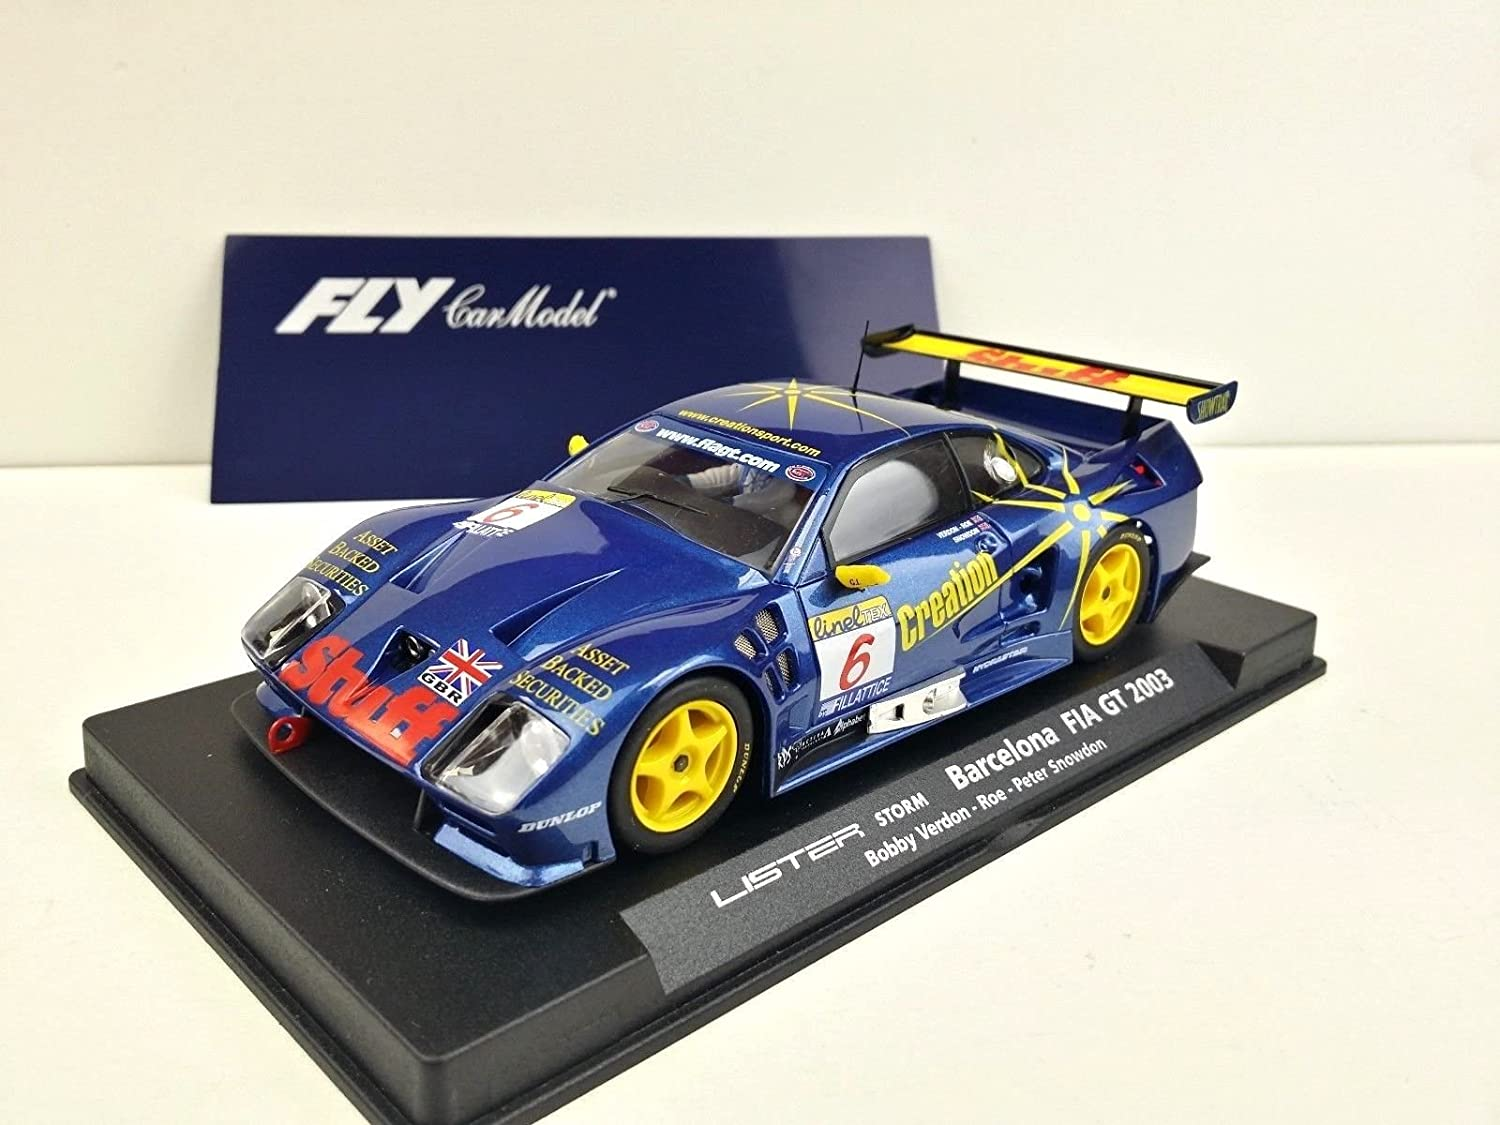 FLy Slot SCX Scalextric 88057 A403 Lister Storm Barcelona Fia GT 2003 Nordm;6